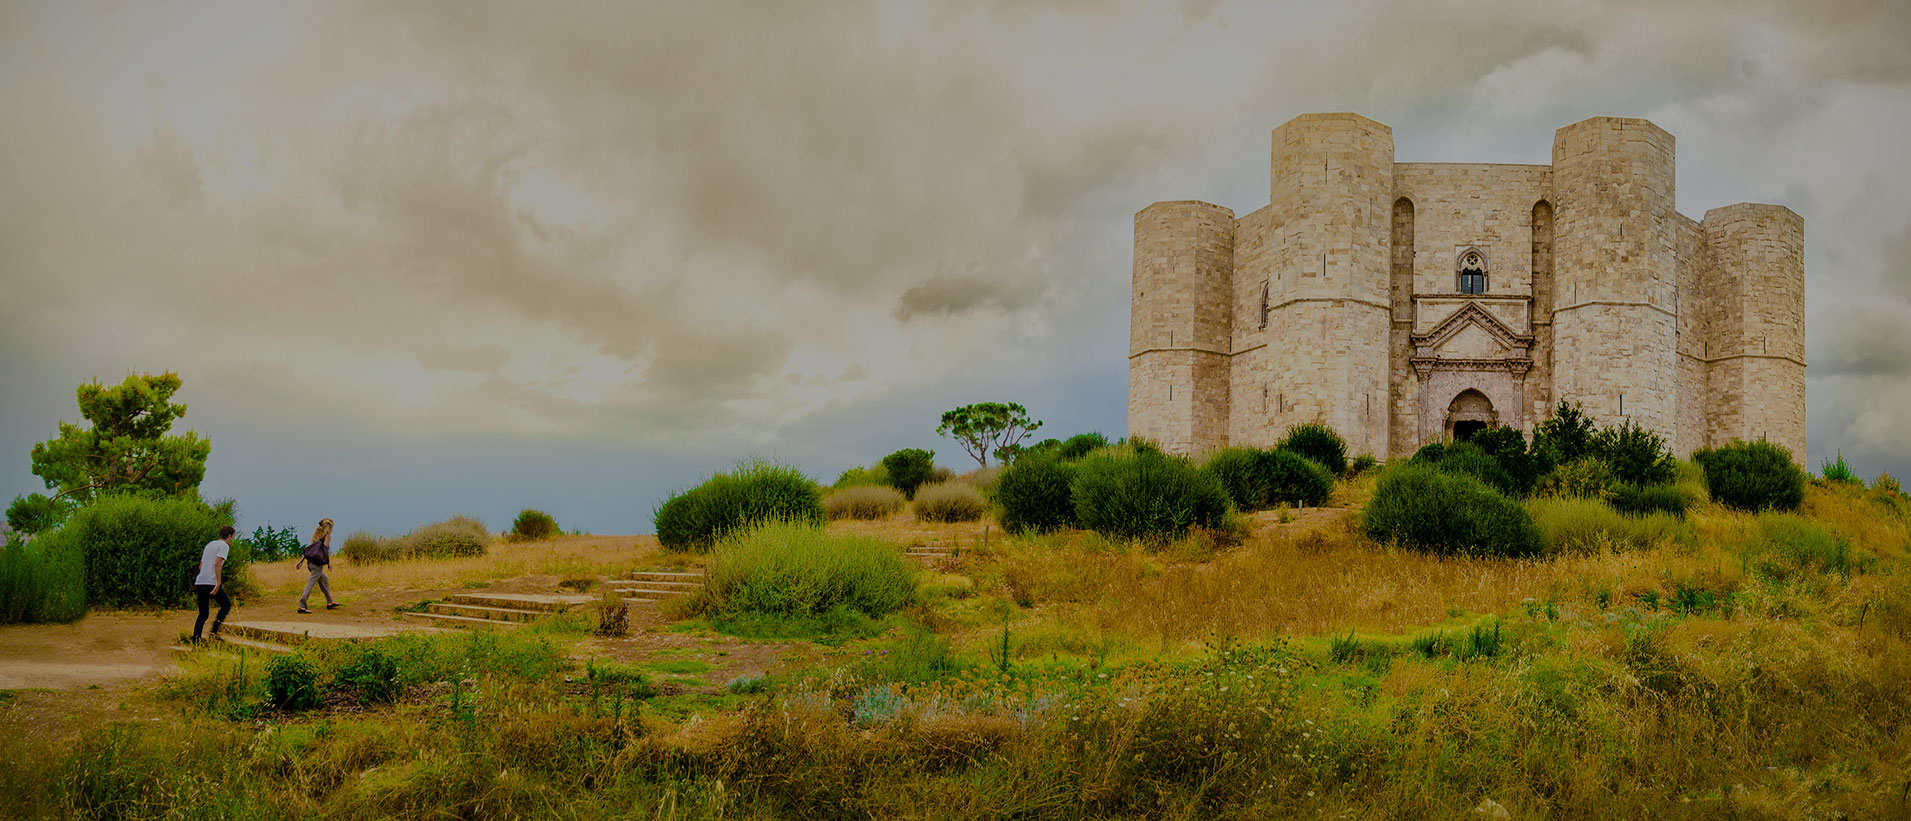 The Monuments People - guide turistiche in Puglia